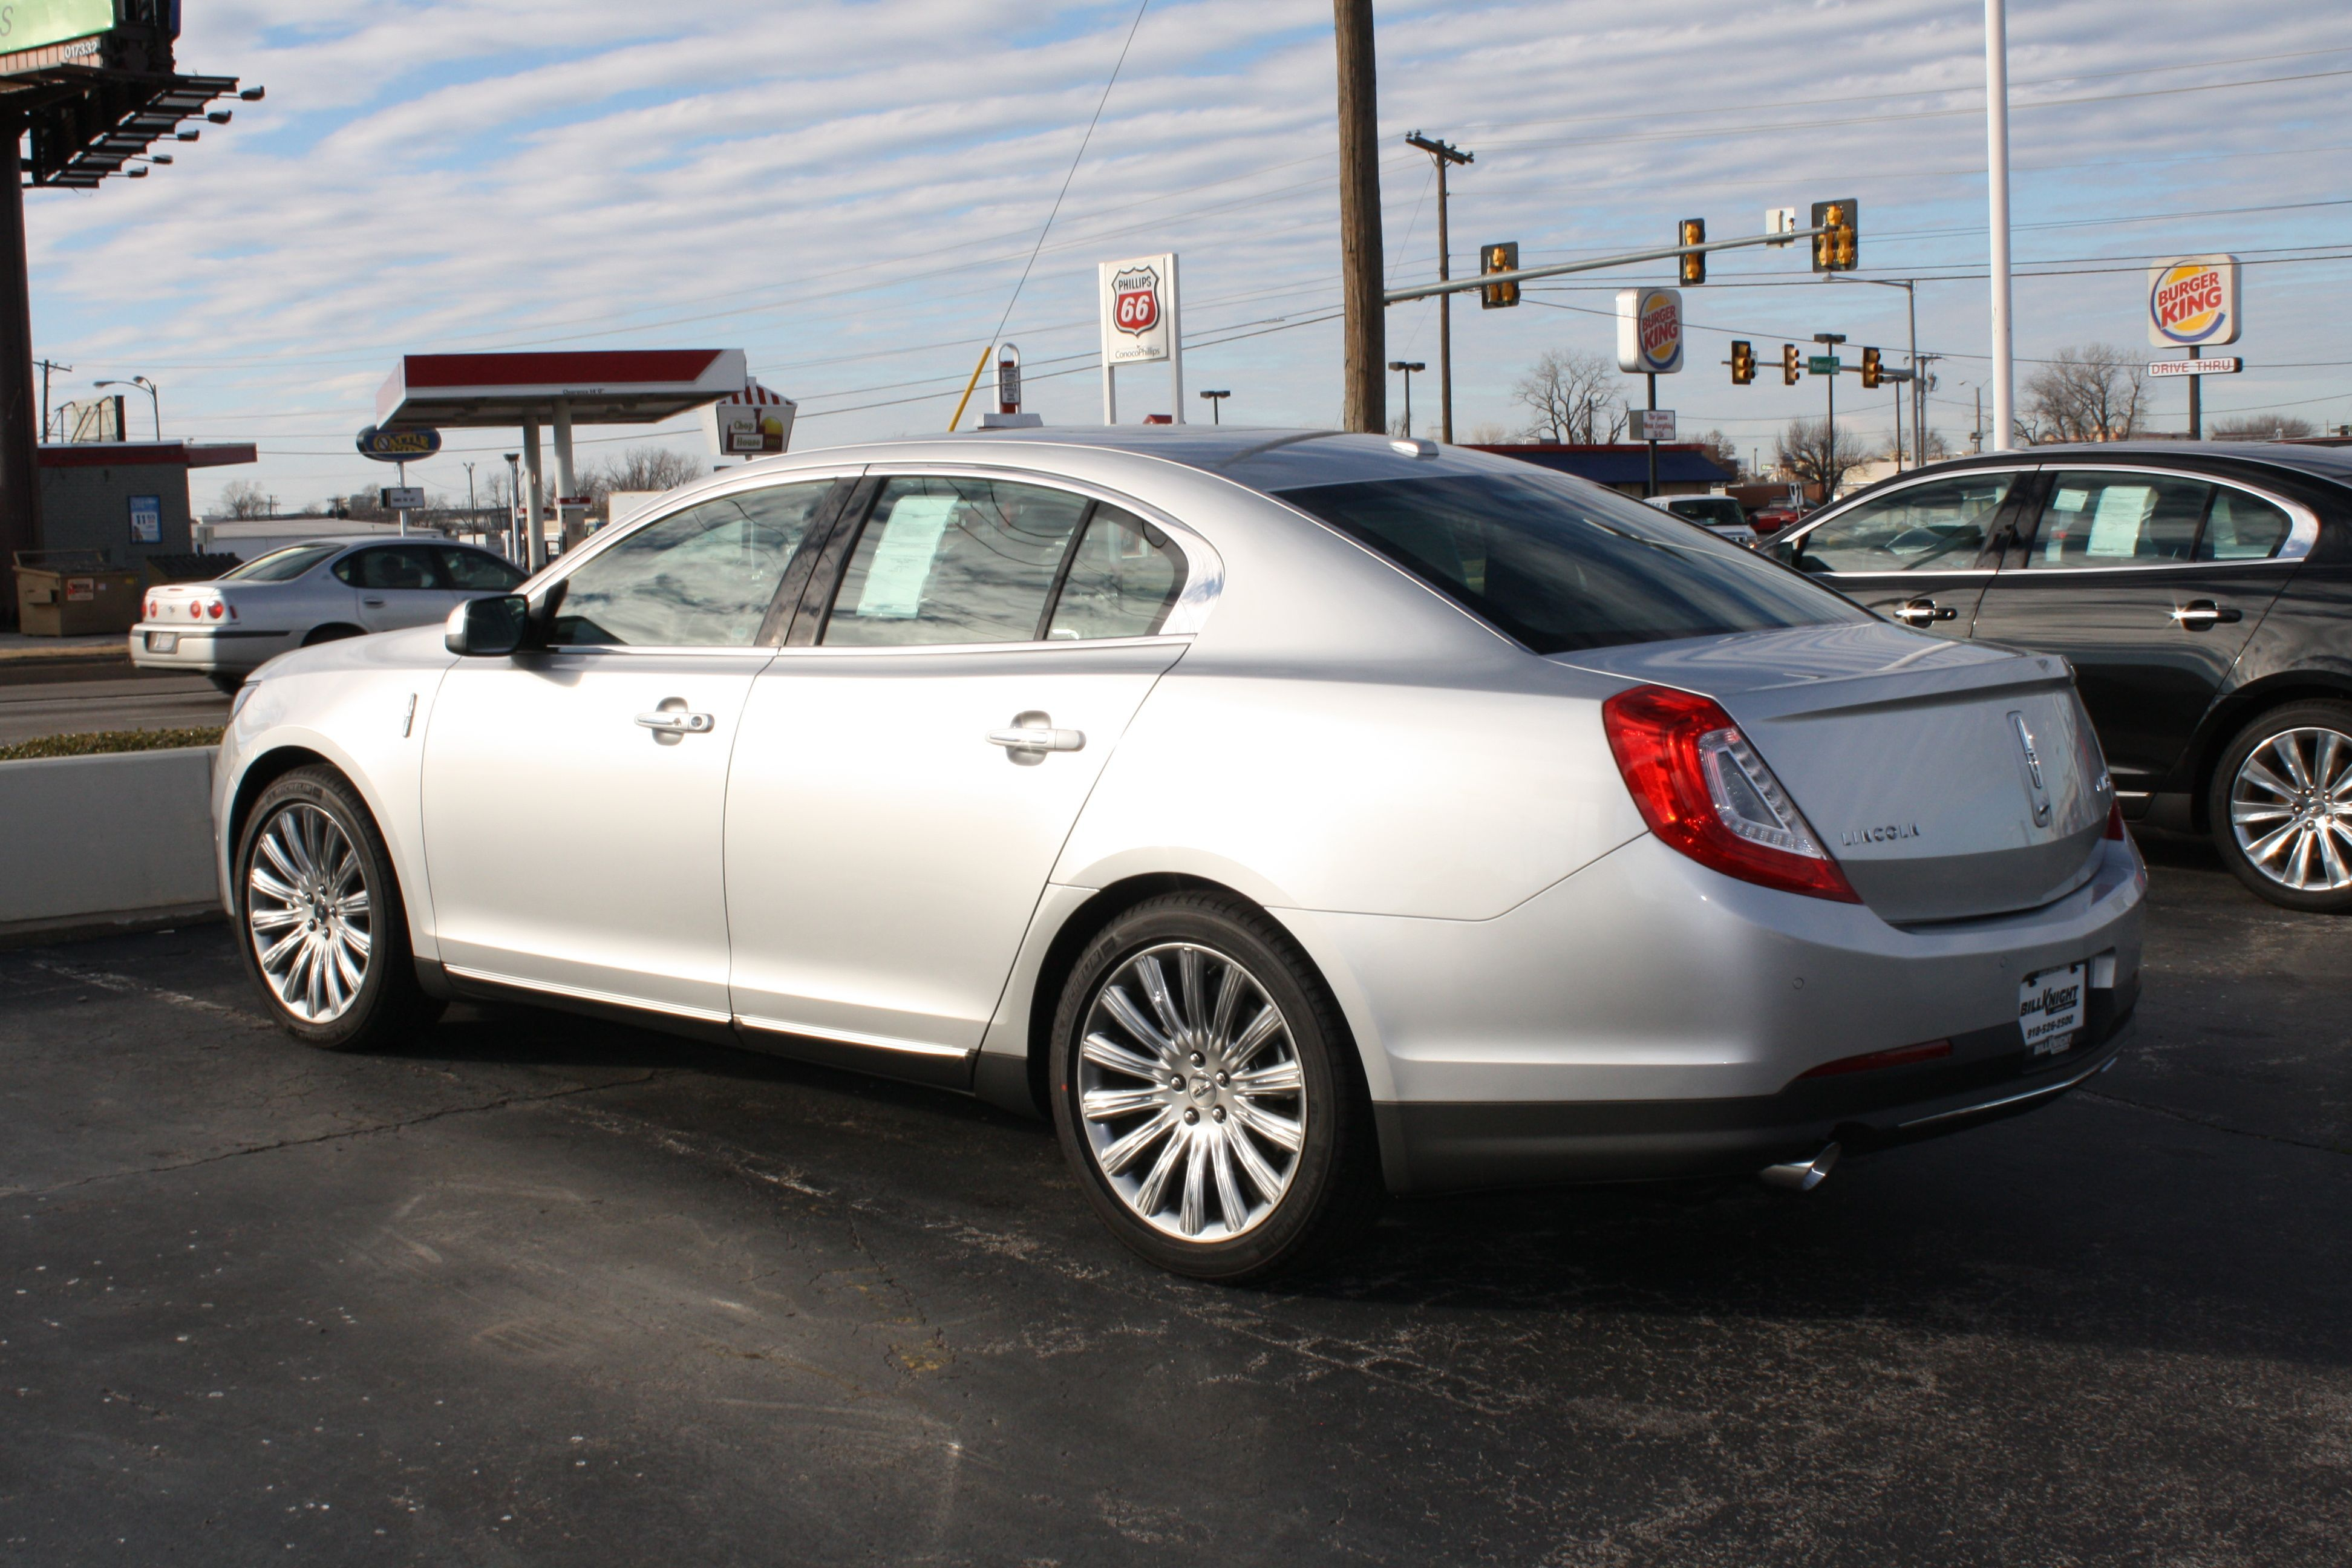 used nj htm lodi for sale lincoln mks